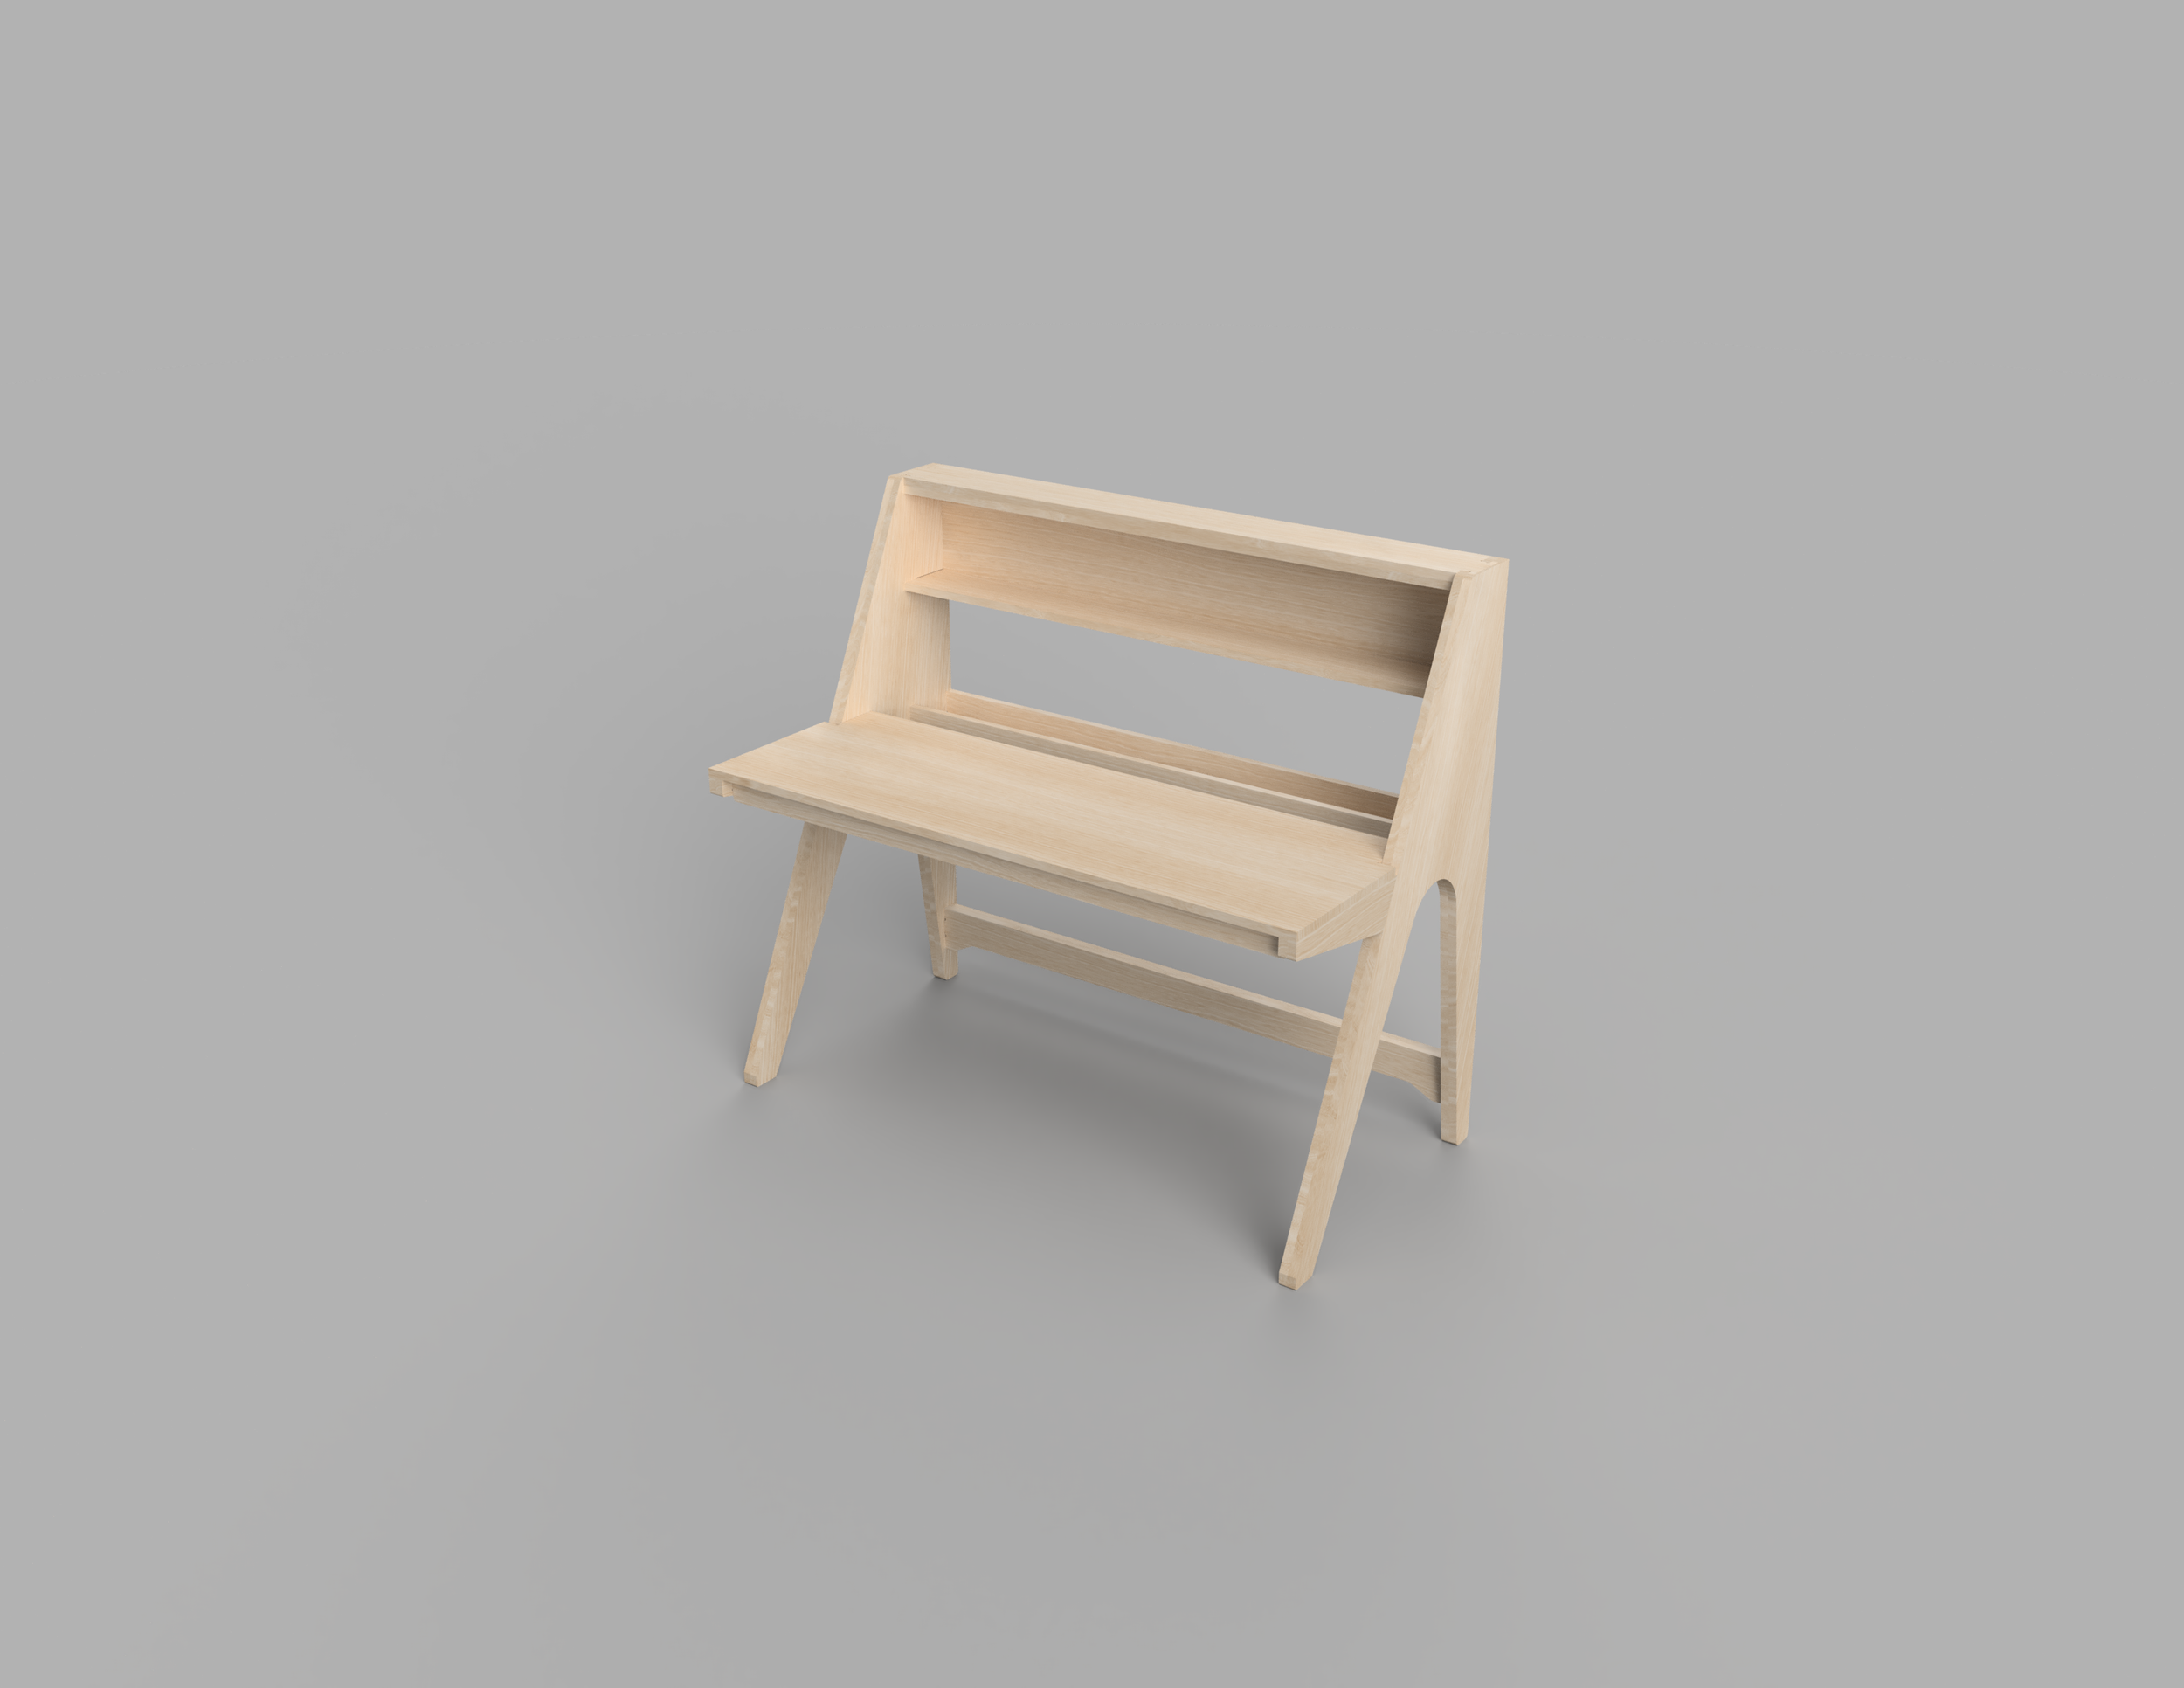 W02_Lift_Table_11_Apr_18.png